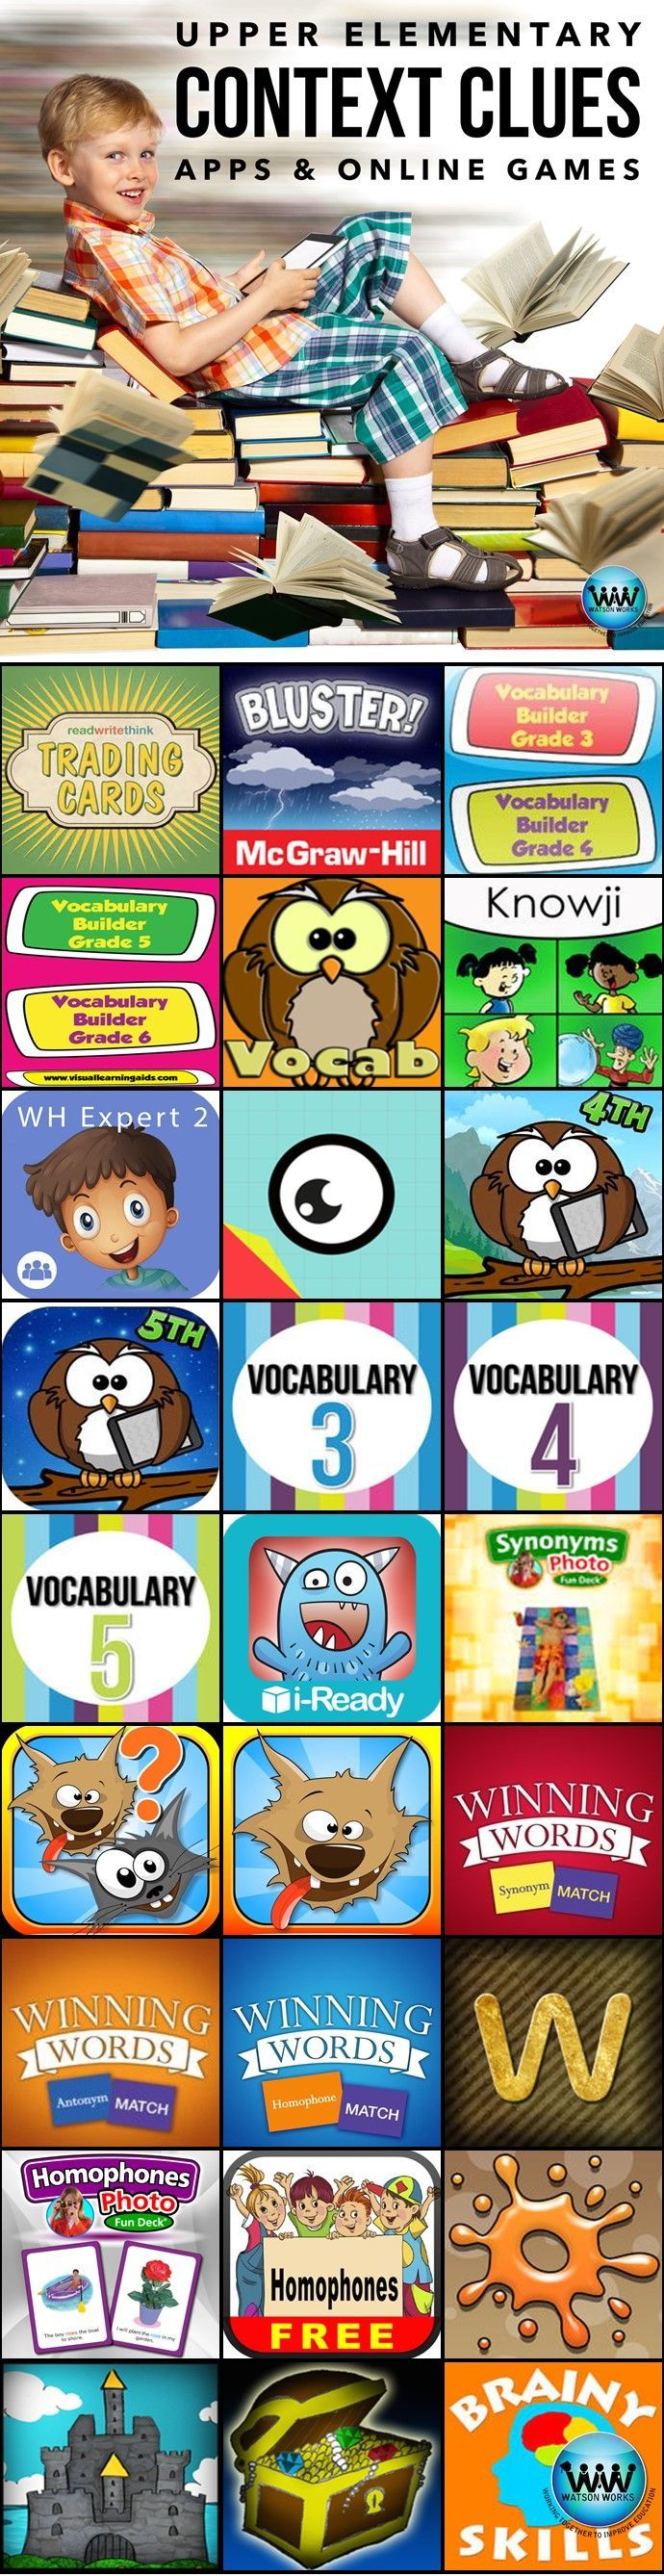 Upper elementary students must be able to use the context of the sentence (e.g., in-sentence example or definition) to determine the meaning of unfamiliar words, multiple meaning words, antonyms, synonyms, and homographs.  Here are some apps, online games, and other resources you can use to practice and review these important context clues learned in upper elementary. #edtech #contextclues #upperelementary #iteachthird #iteachfourth #iteachfifth #ipadapps #technologyintheclassroom